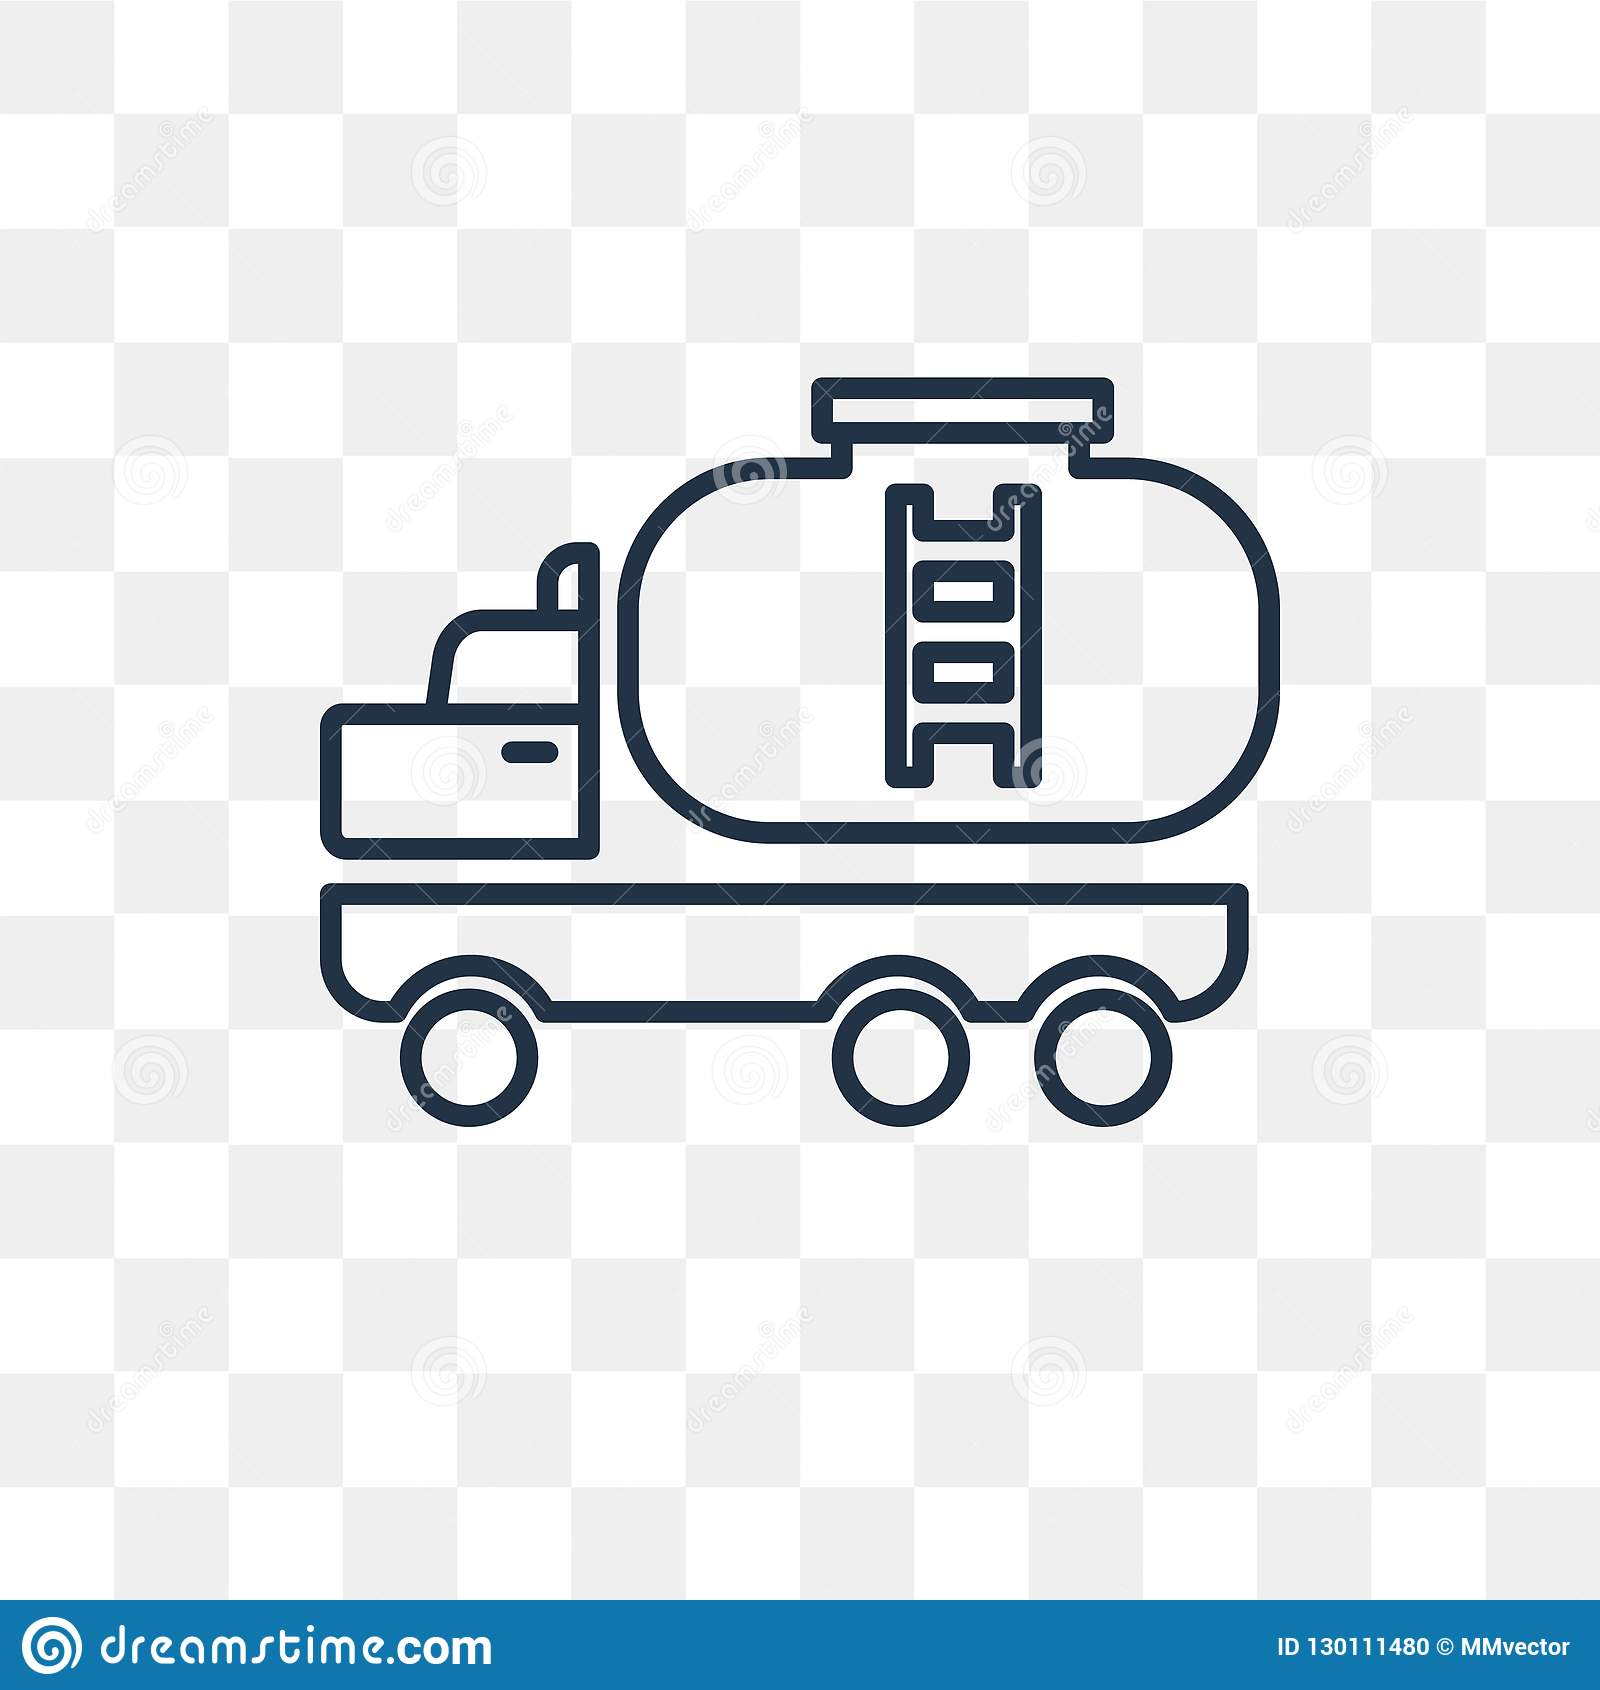 tank truck vector icon isolated on transparent background linear tank truck transparency concept can be used web and mobile stock vector illustration of shipping cargo 130111480 https www dreamstime com tank truck vector icon isolated transparent background linea outline high quality linear transparency concept can be used web image130111480